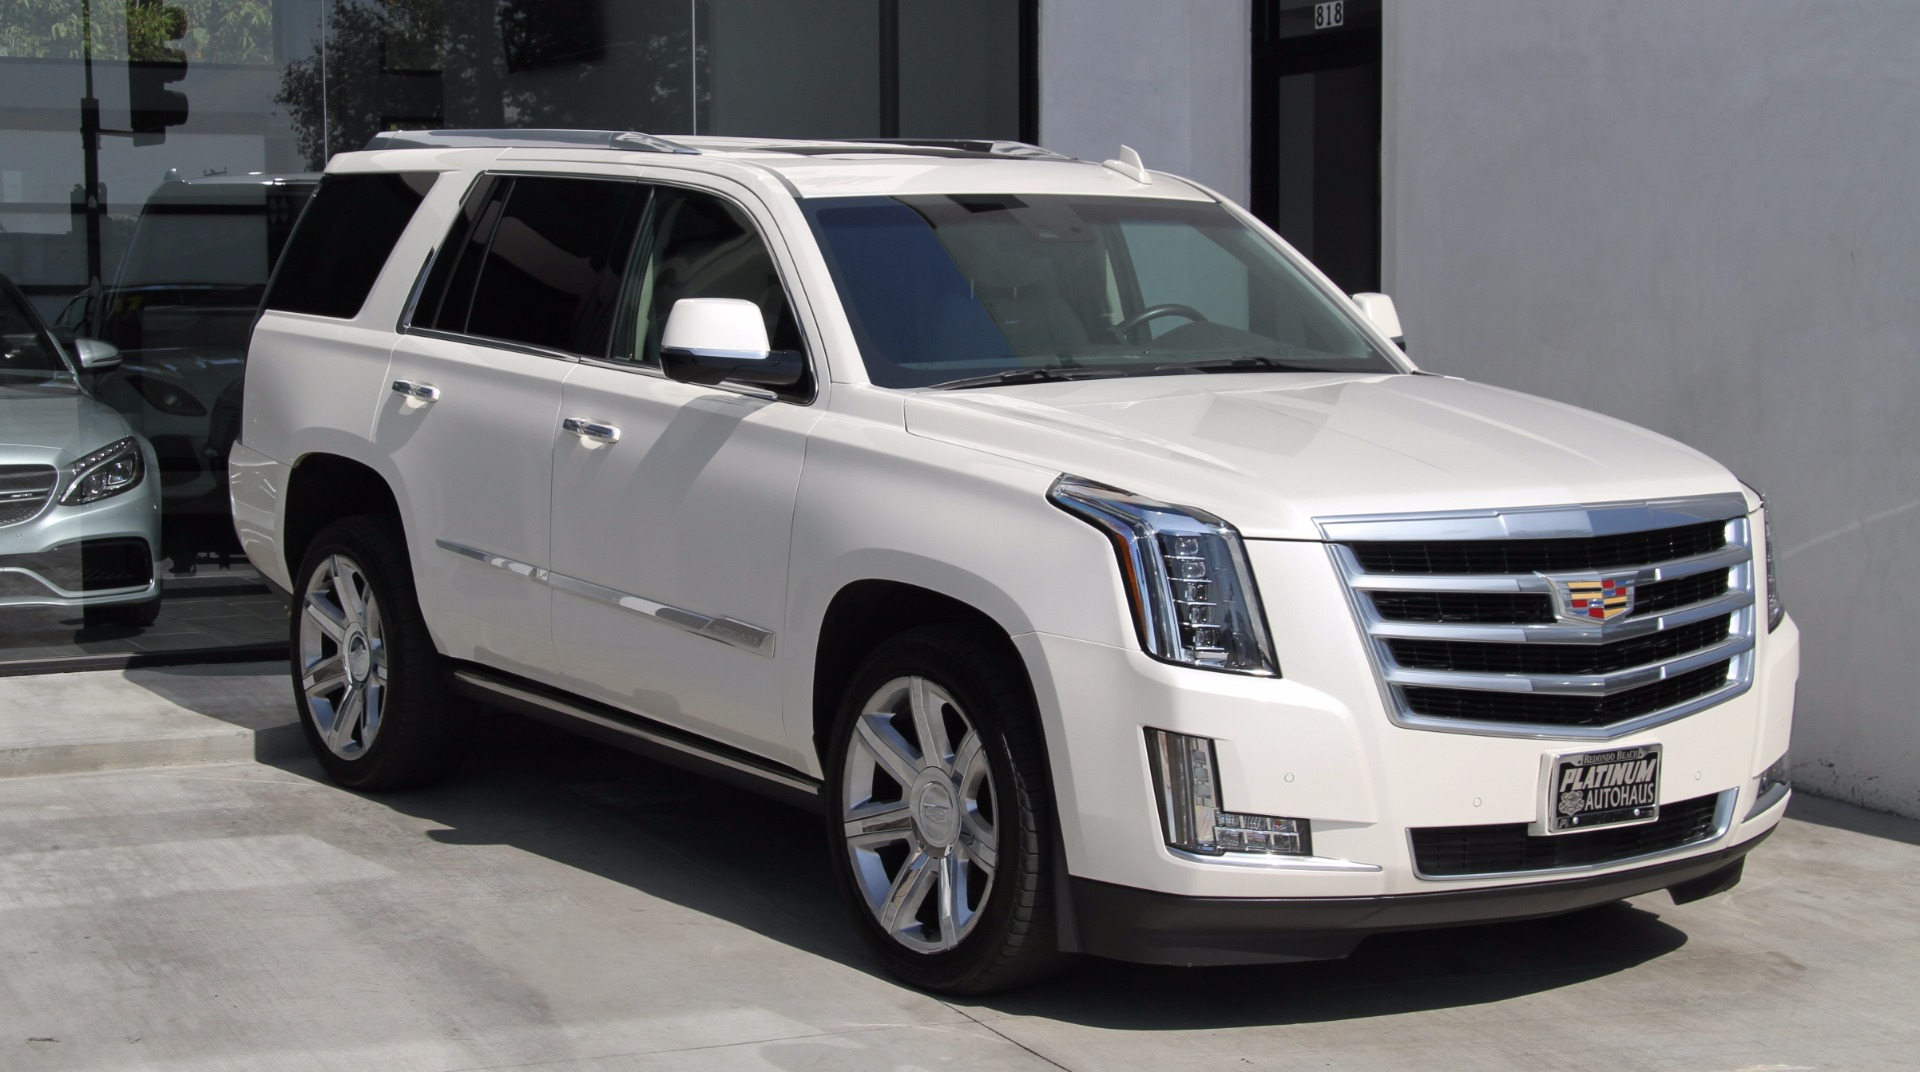 2012 Cadillac Escalade Platinum For Sale >> Used Suv For Sale Near Me | All New Car Release Date 2019 2020